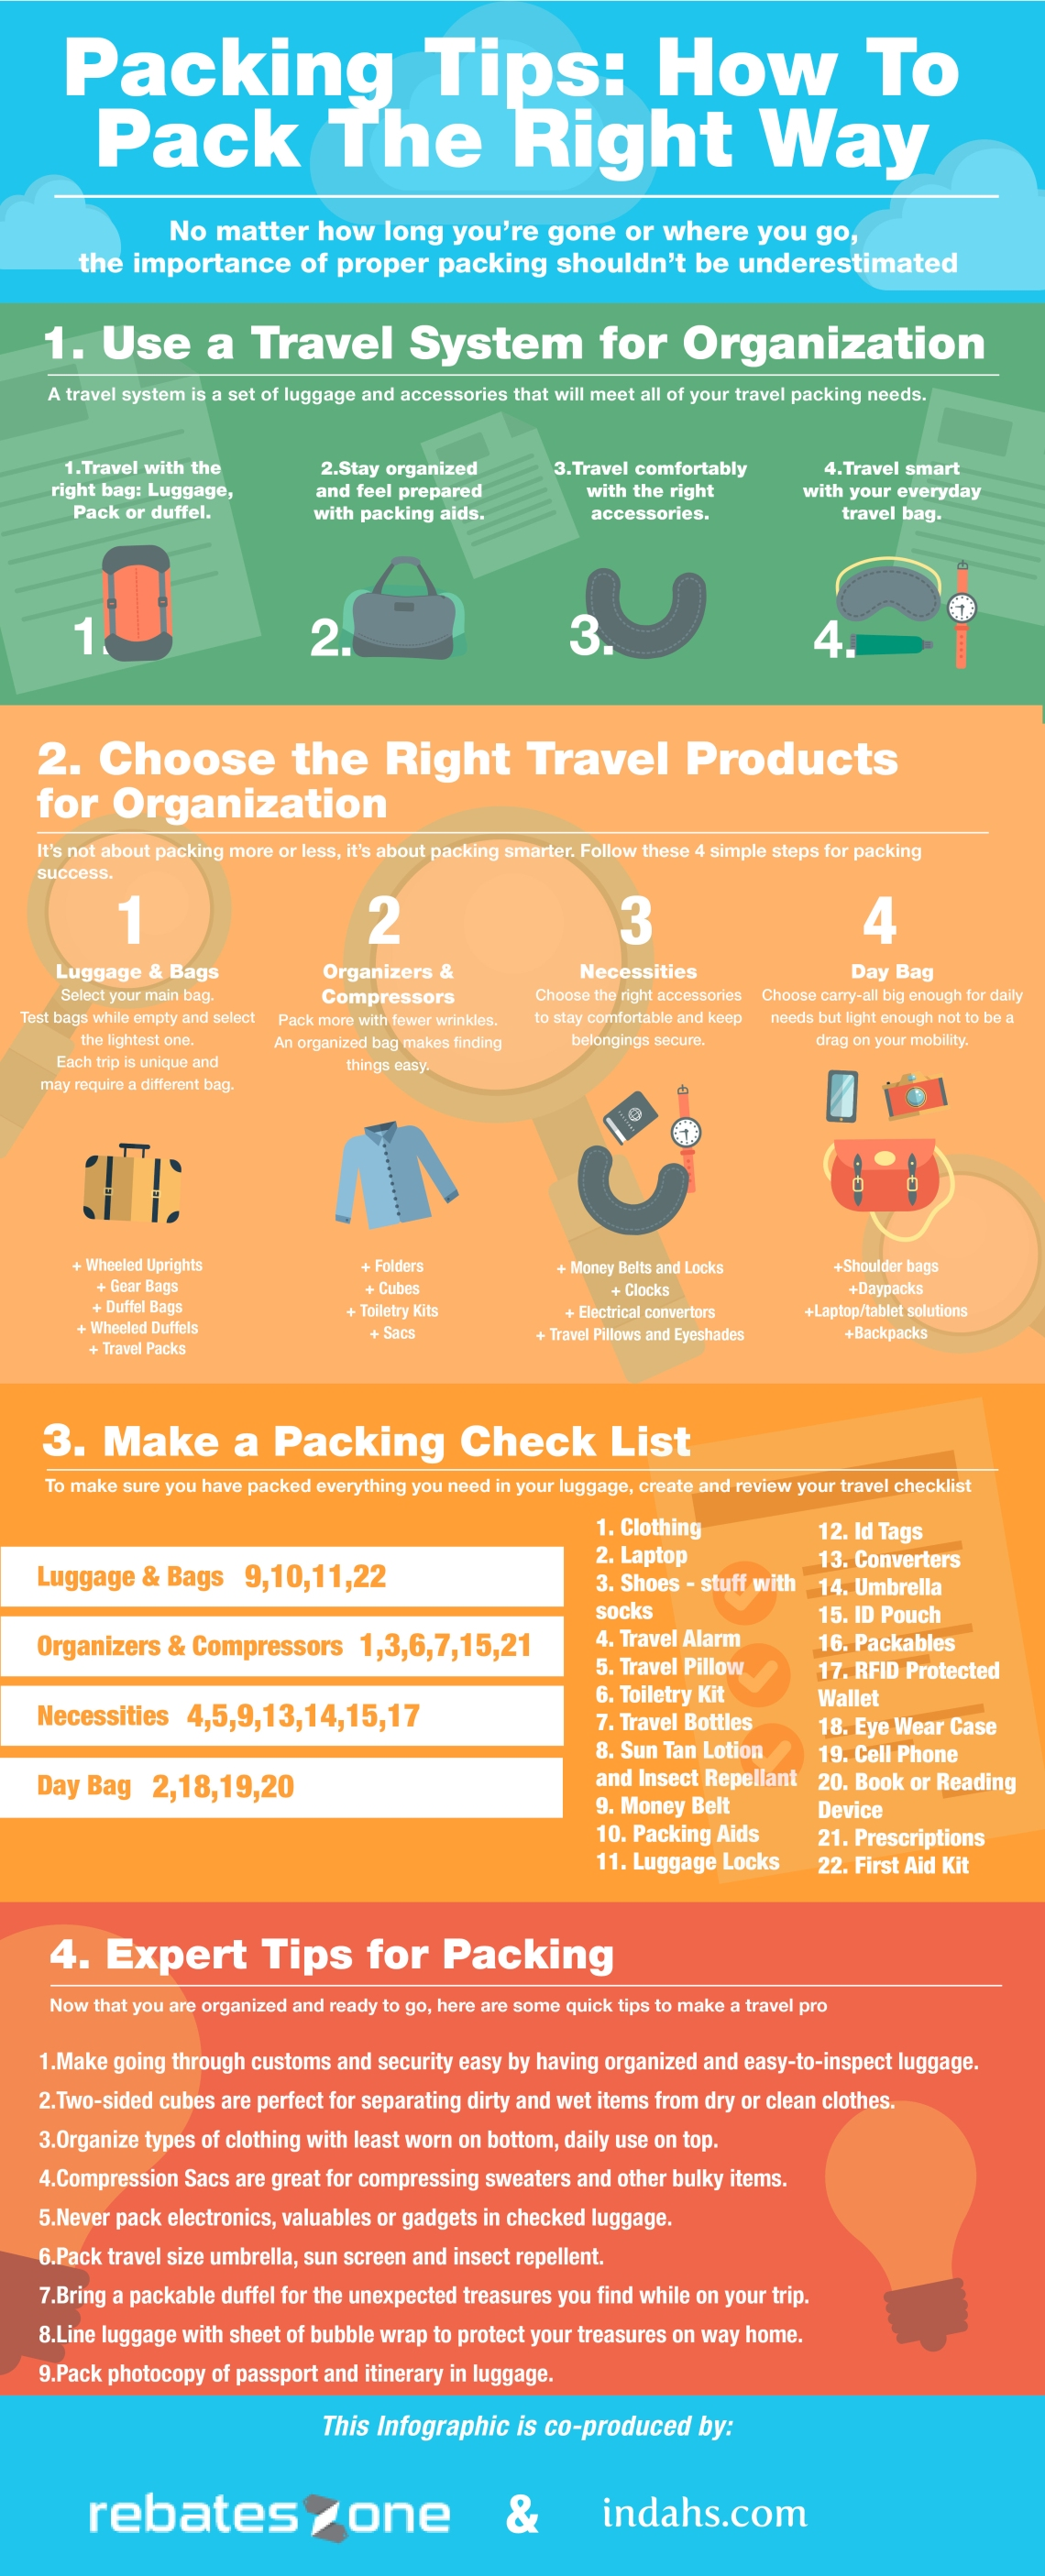 packing tips rebateszone indahs